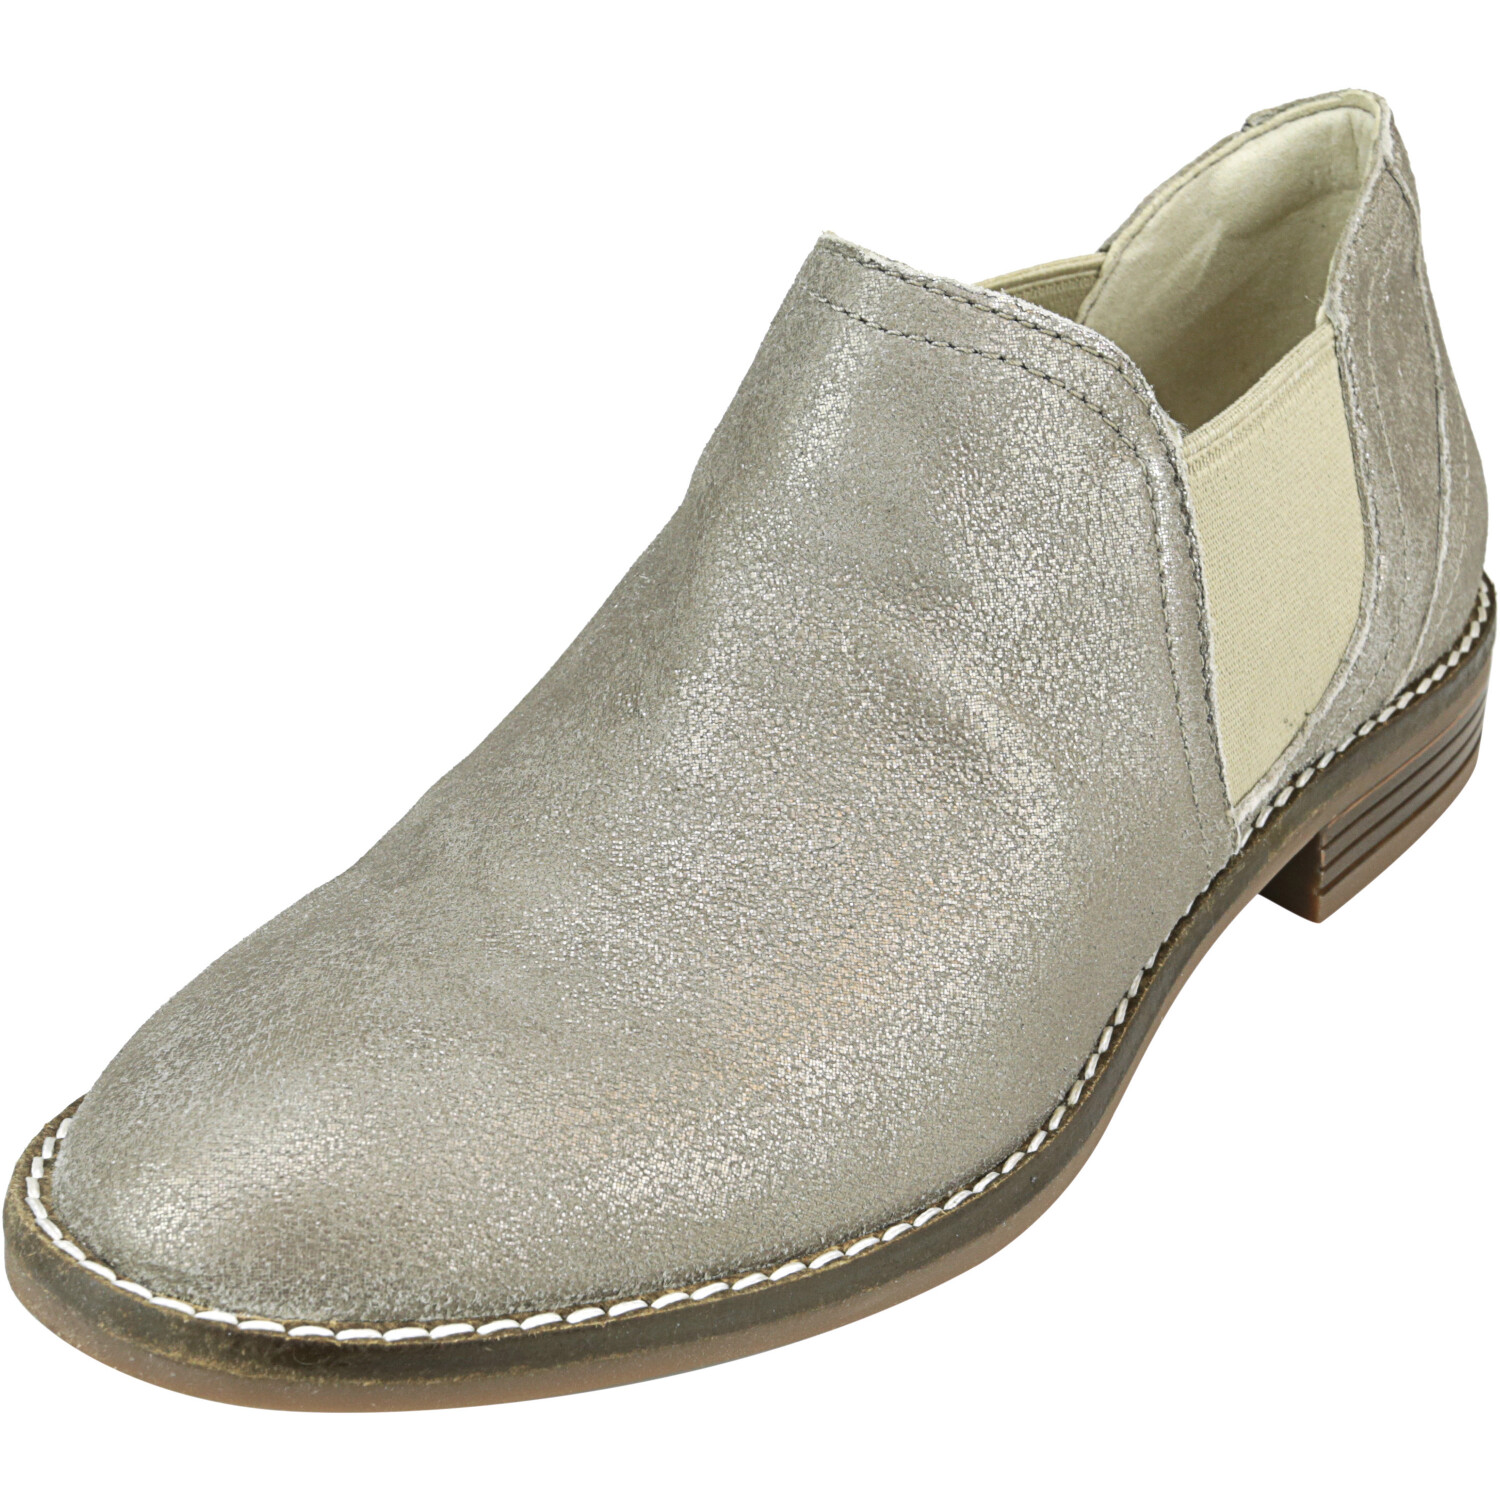 Clarks Women's Camzin Maple Suede Pewter Ankle-High Leather Boot - 5M